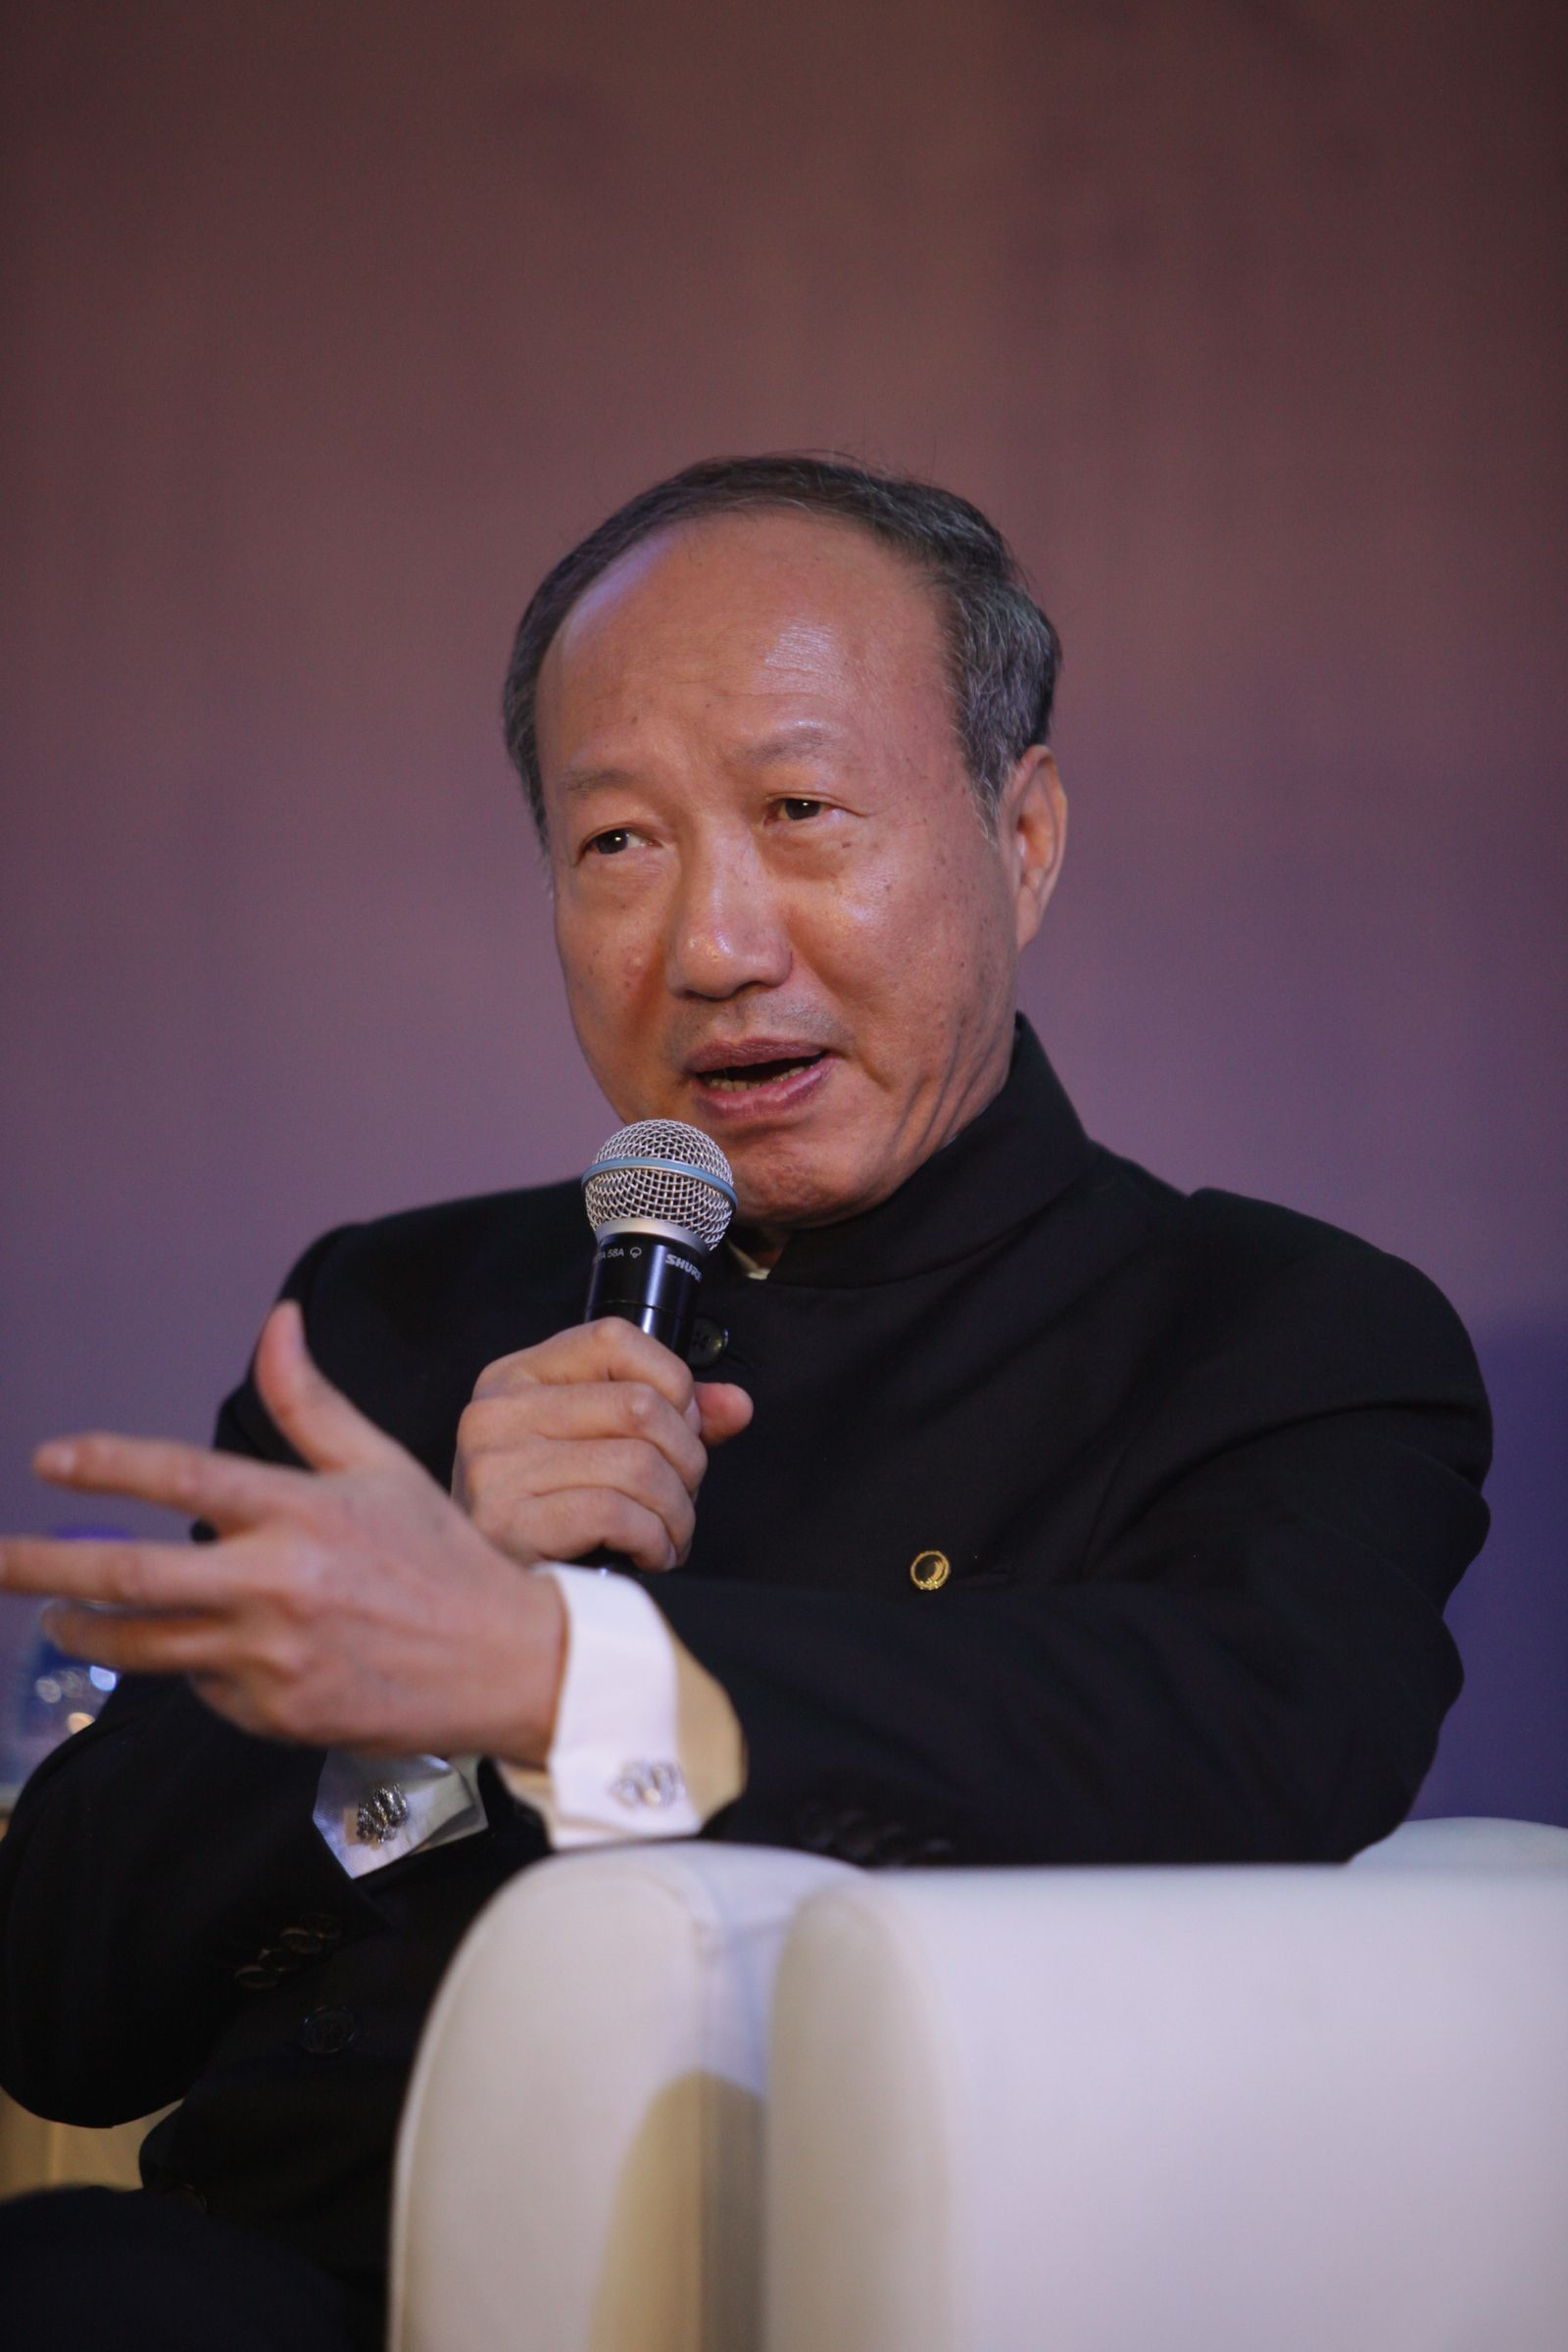 CHEN Feng, Chairman of the Board, HNA GROUP